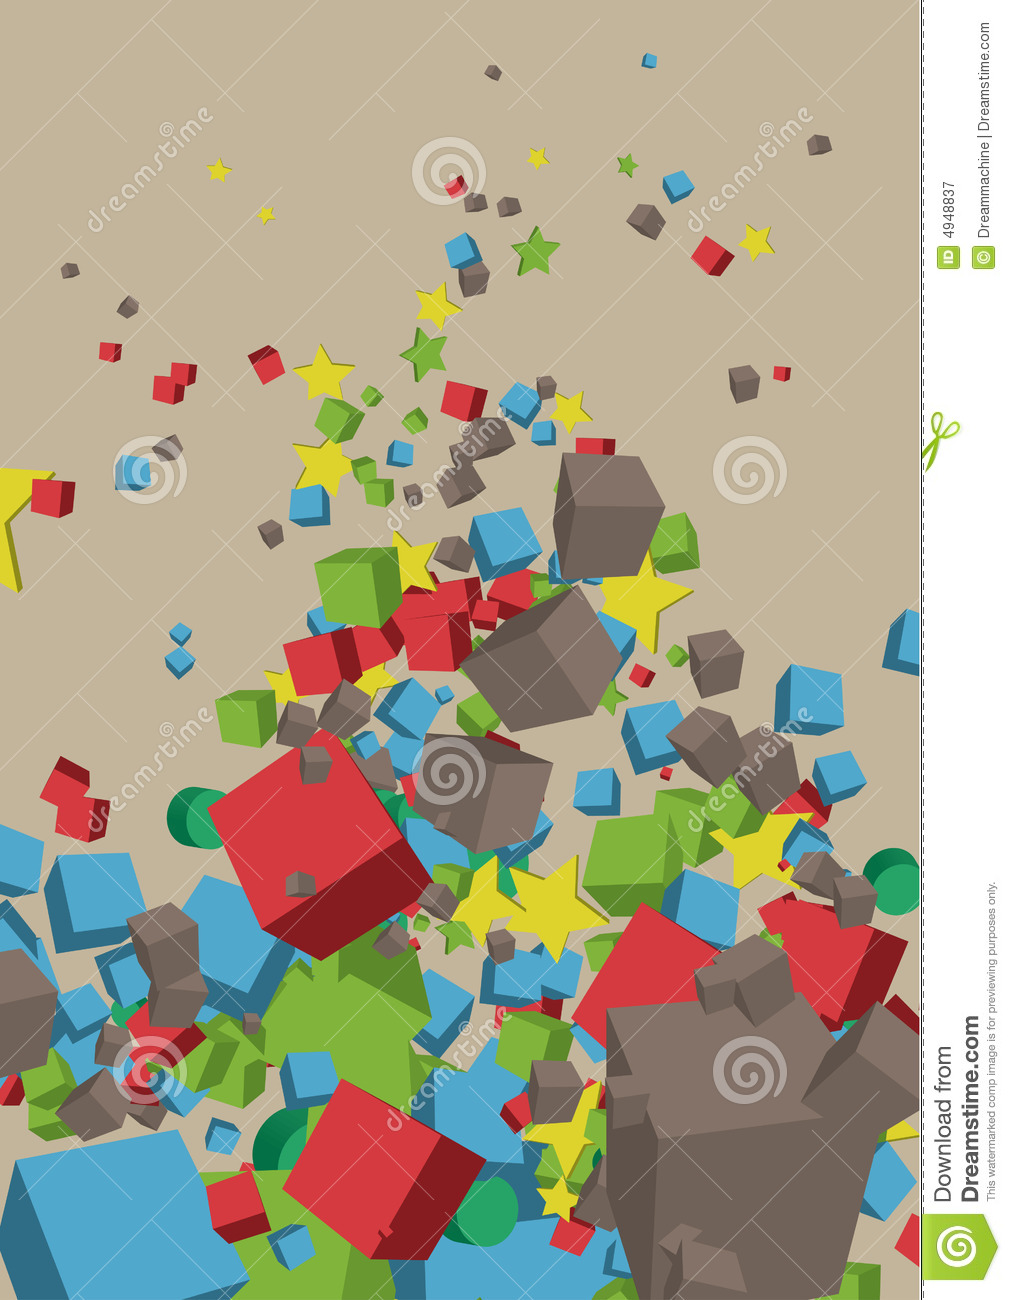 3d Basic Shapes Composition Royalty Free Stock Photography - Image ...